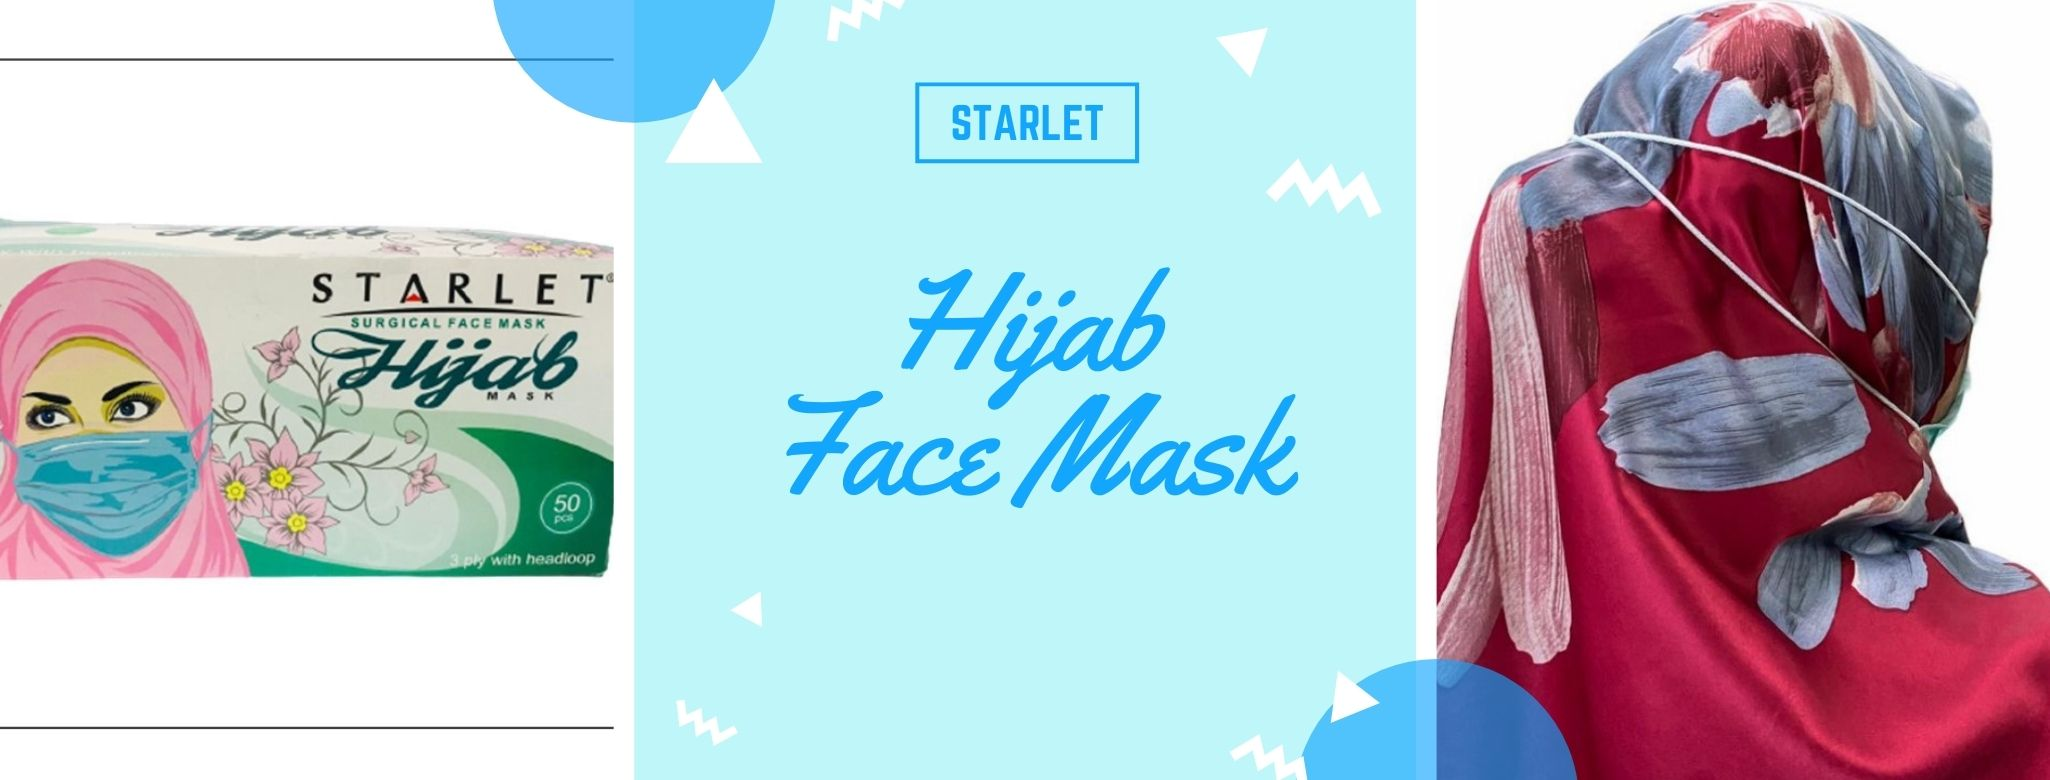 hijab face mask banner for xpressmall